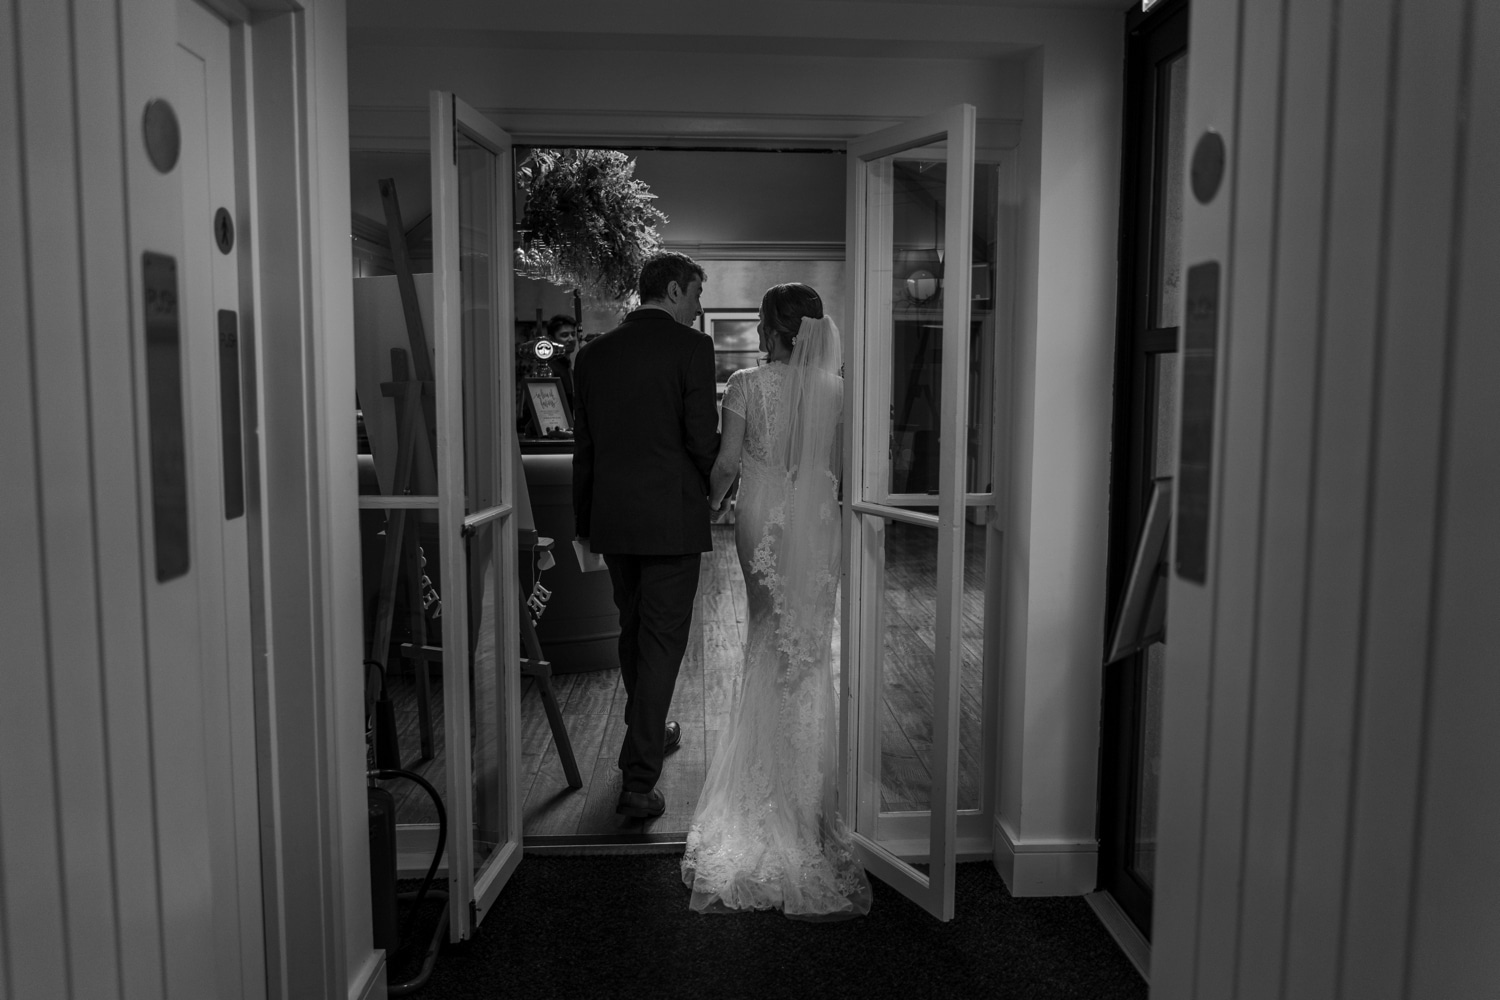 Bride and groom walking through ceremony room